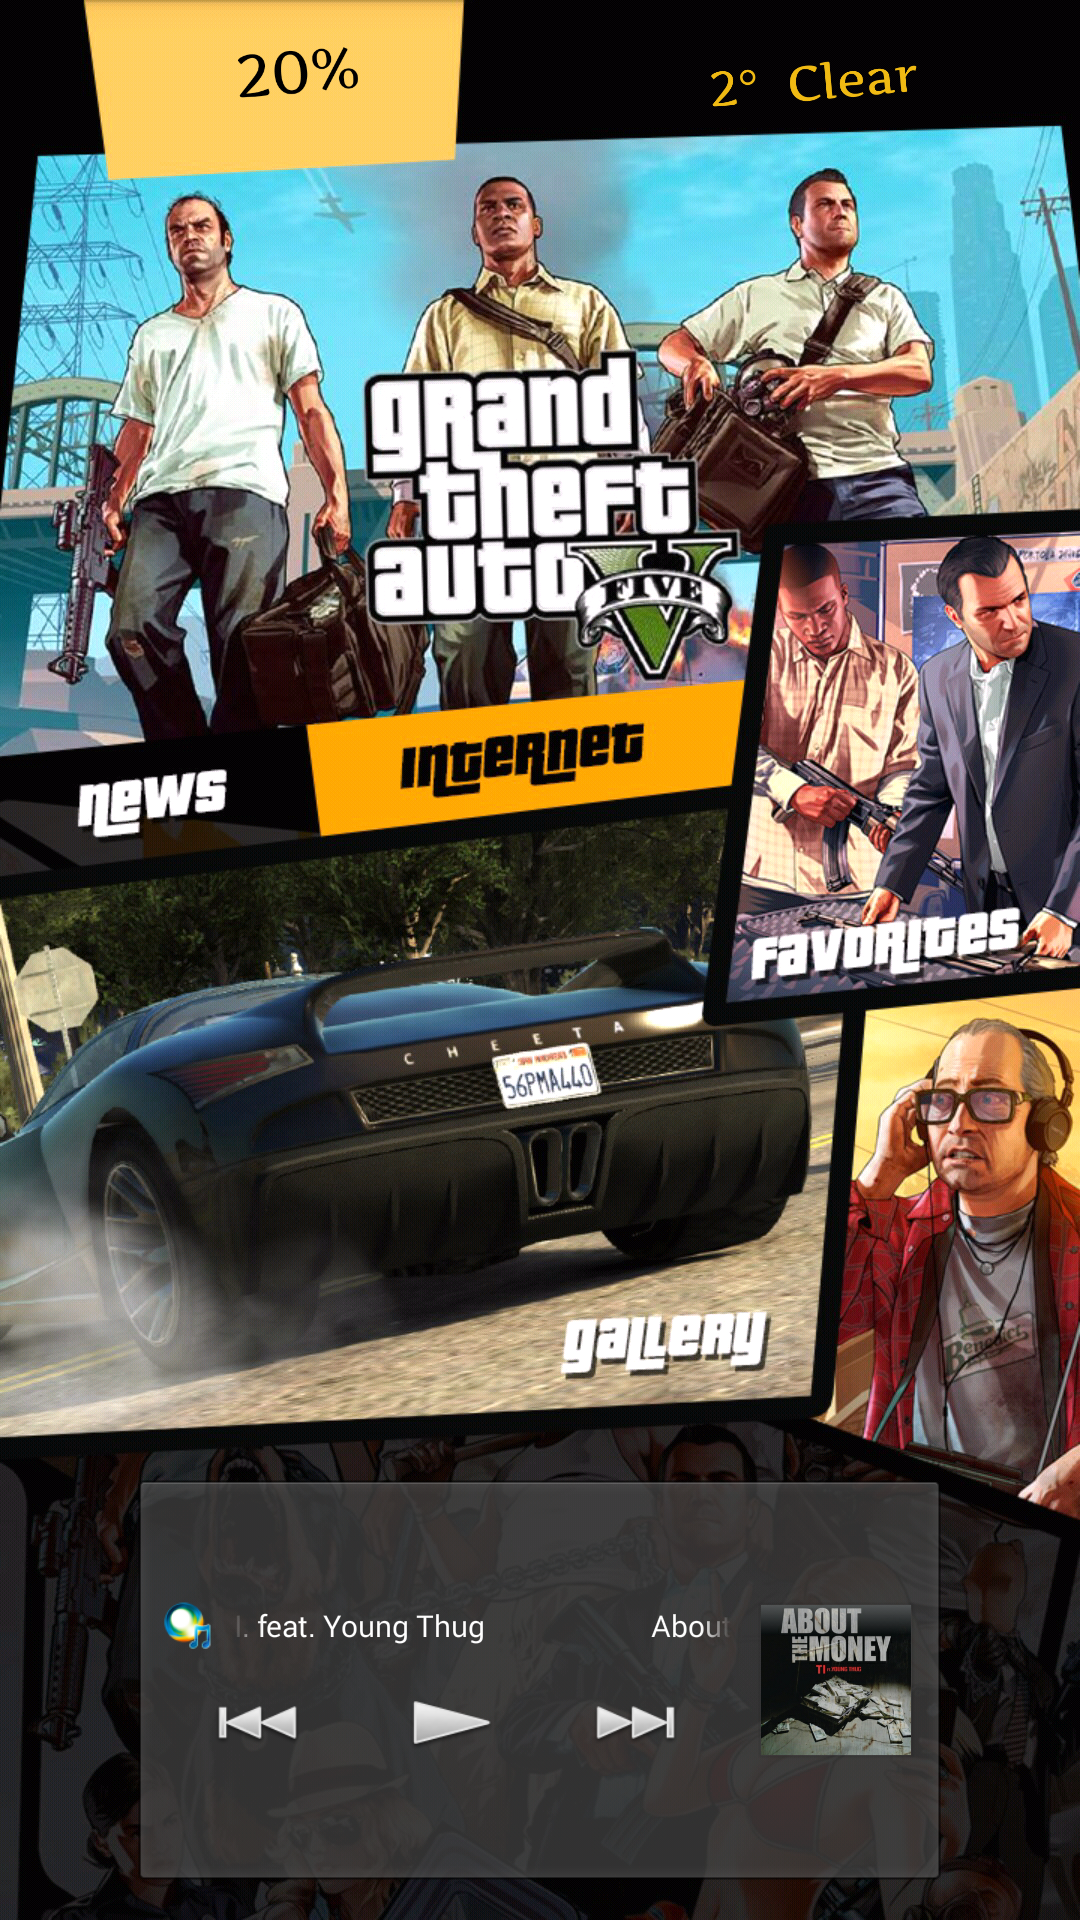 Google chrome theme gta v -  My Phone Battery Percentage And Weather It Once Again Has Title Names For Buttons My News Is Linked To The Vouge App Internet With Google Chrome